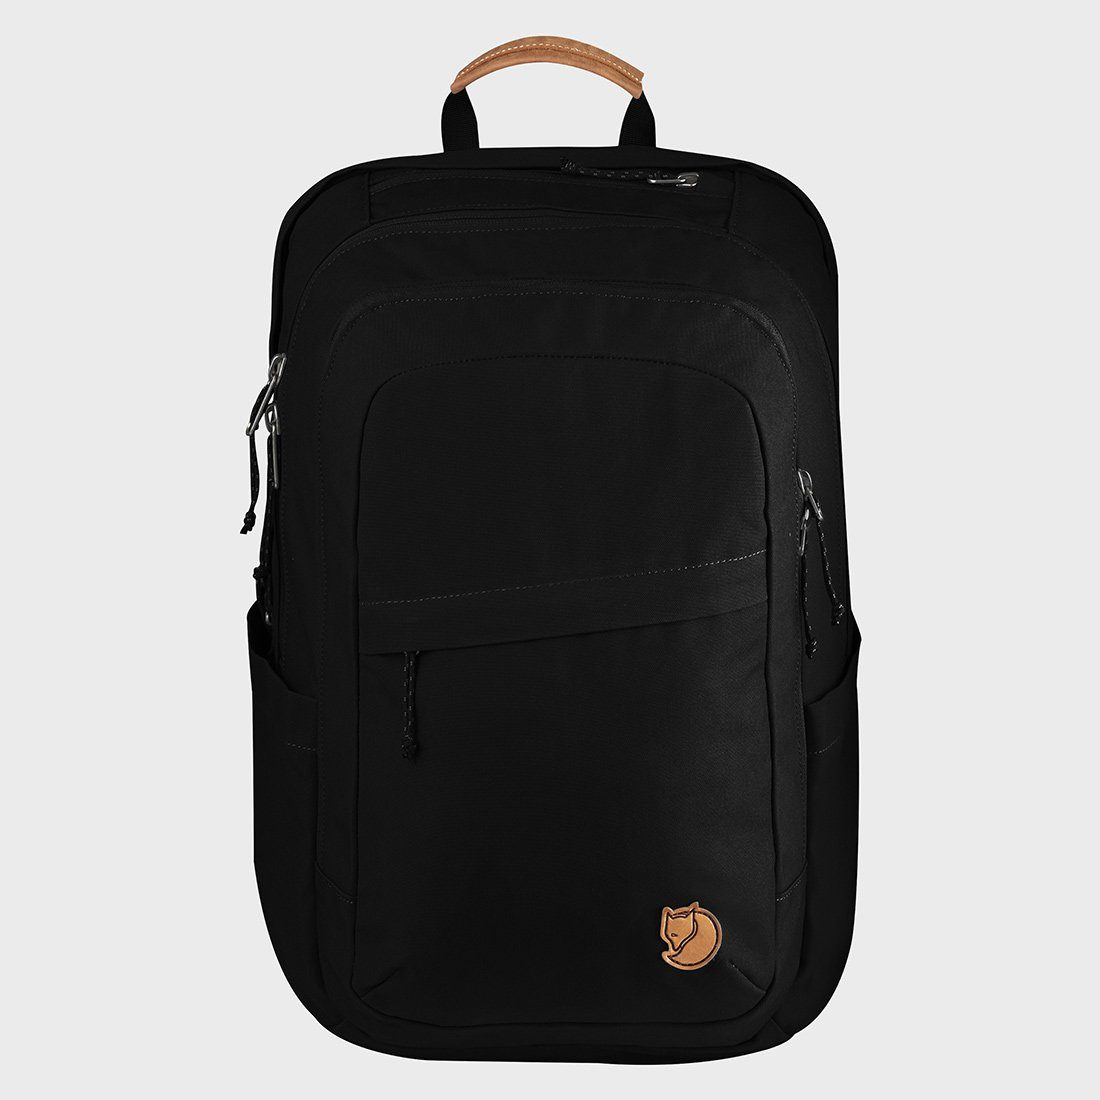 Fjallraven Raven 28 Backpack Black